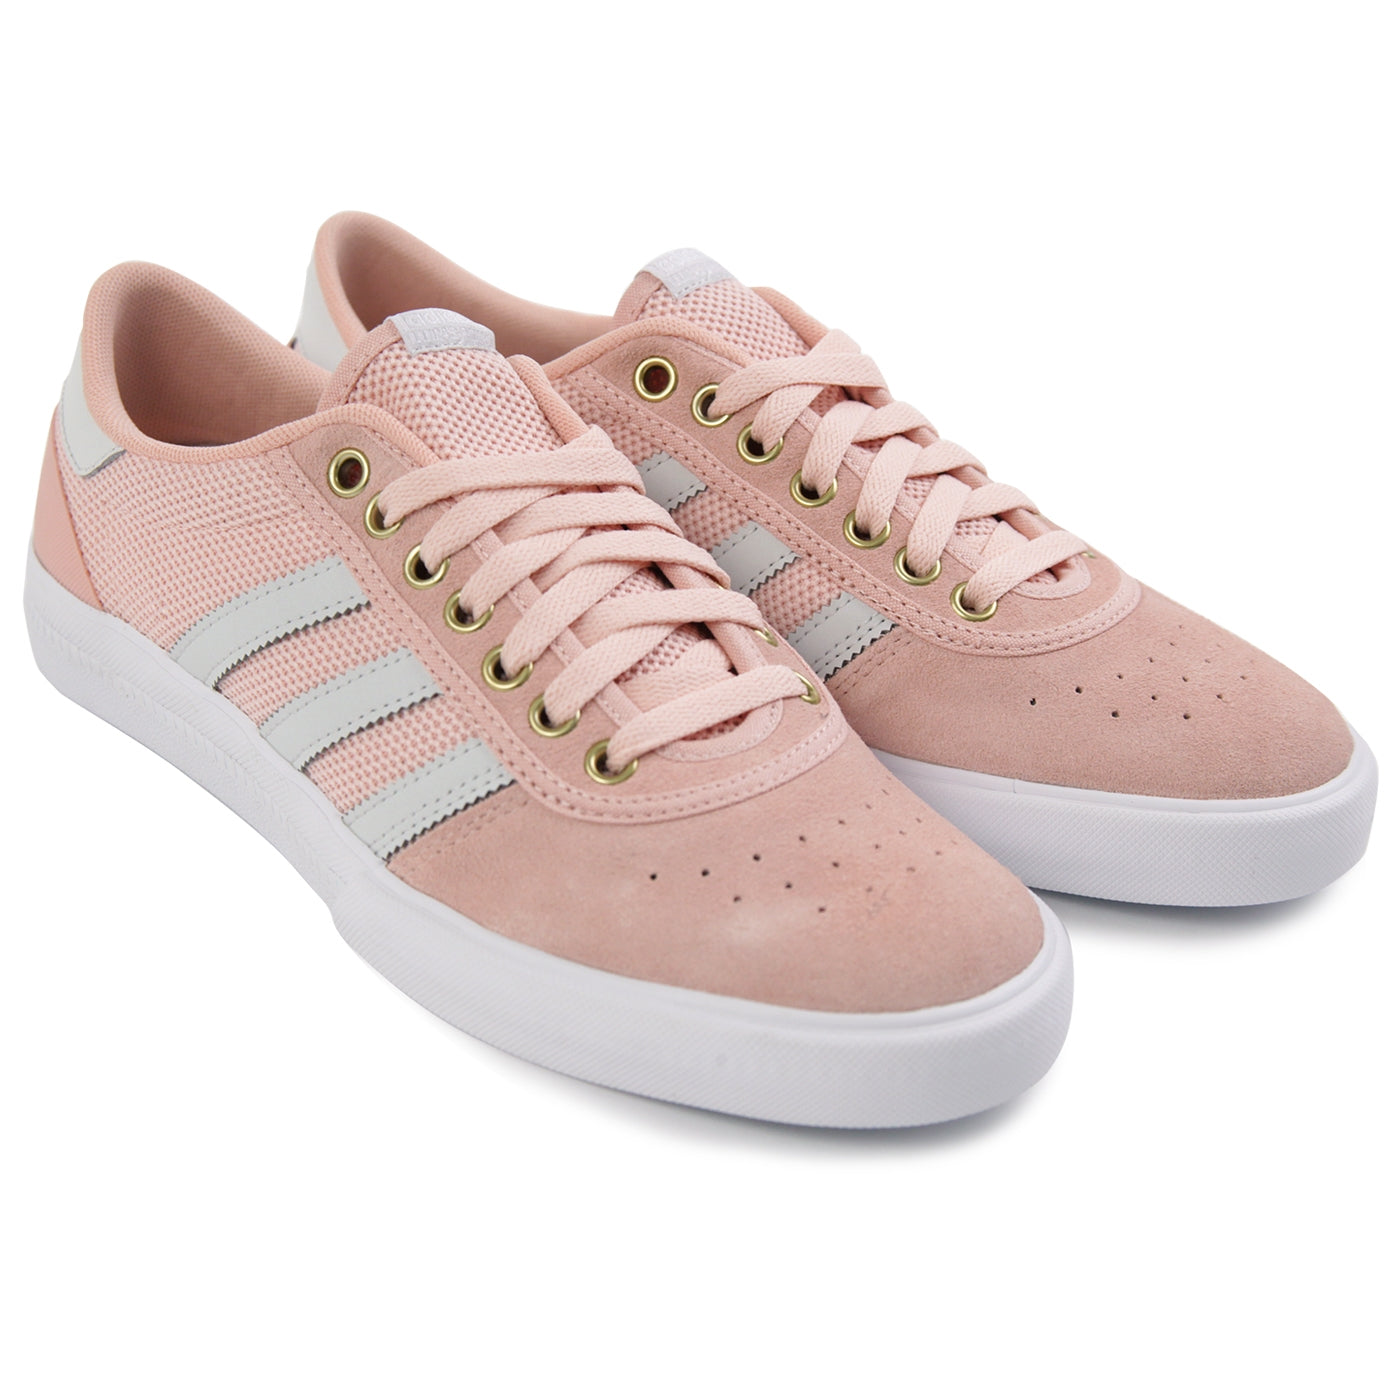 cheap for discount 58ab5 eeaad Adidas Lucas Premiere Shoes - Vapour Pink   Grey   Footwear White. Size  Charts